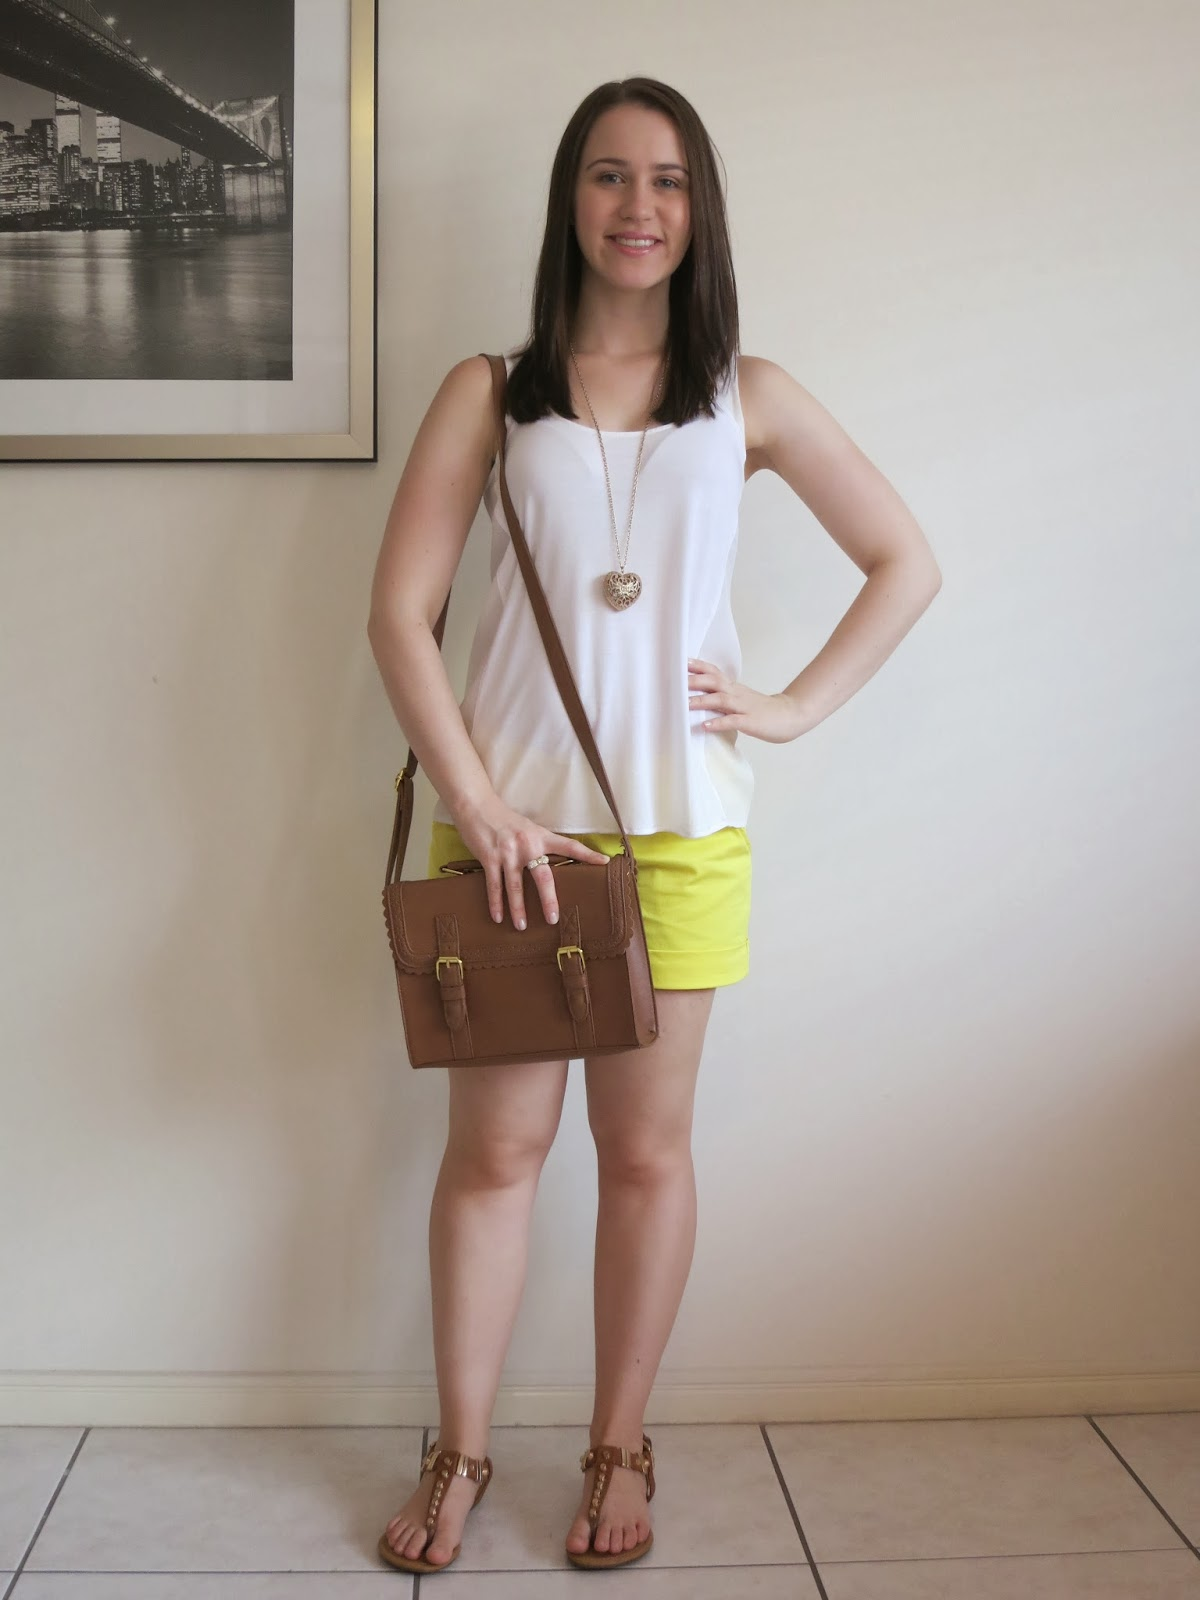 petite outfit, college outfit, everyday outfit, university outfit, yellow shorts, sheer panels tank, tan accessories with gold studs